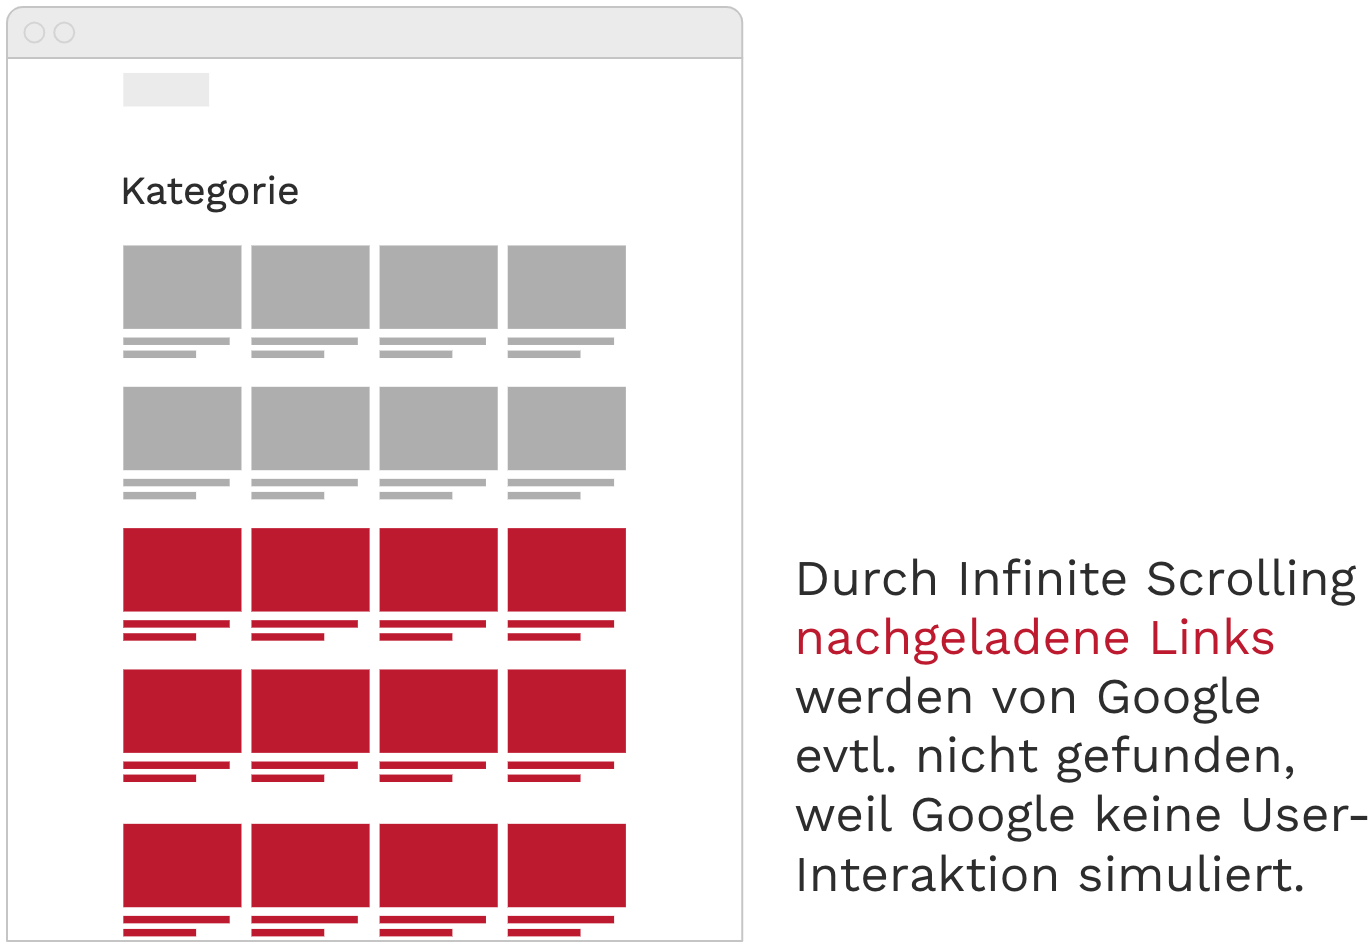 Durch Infinite Scrolling nachgeladene Links